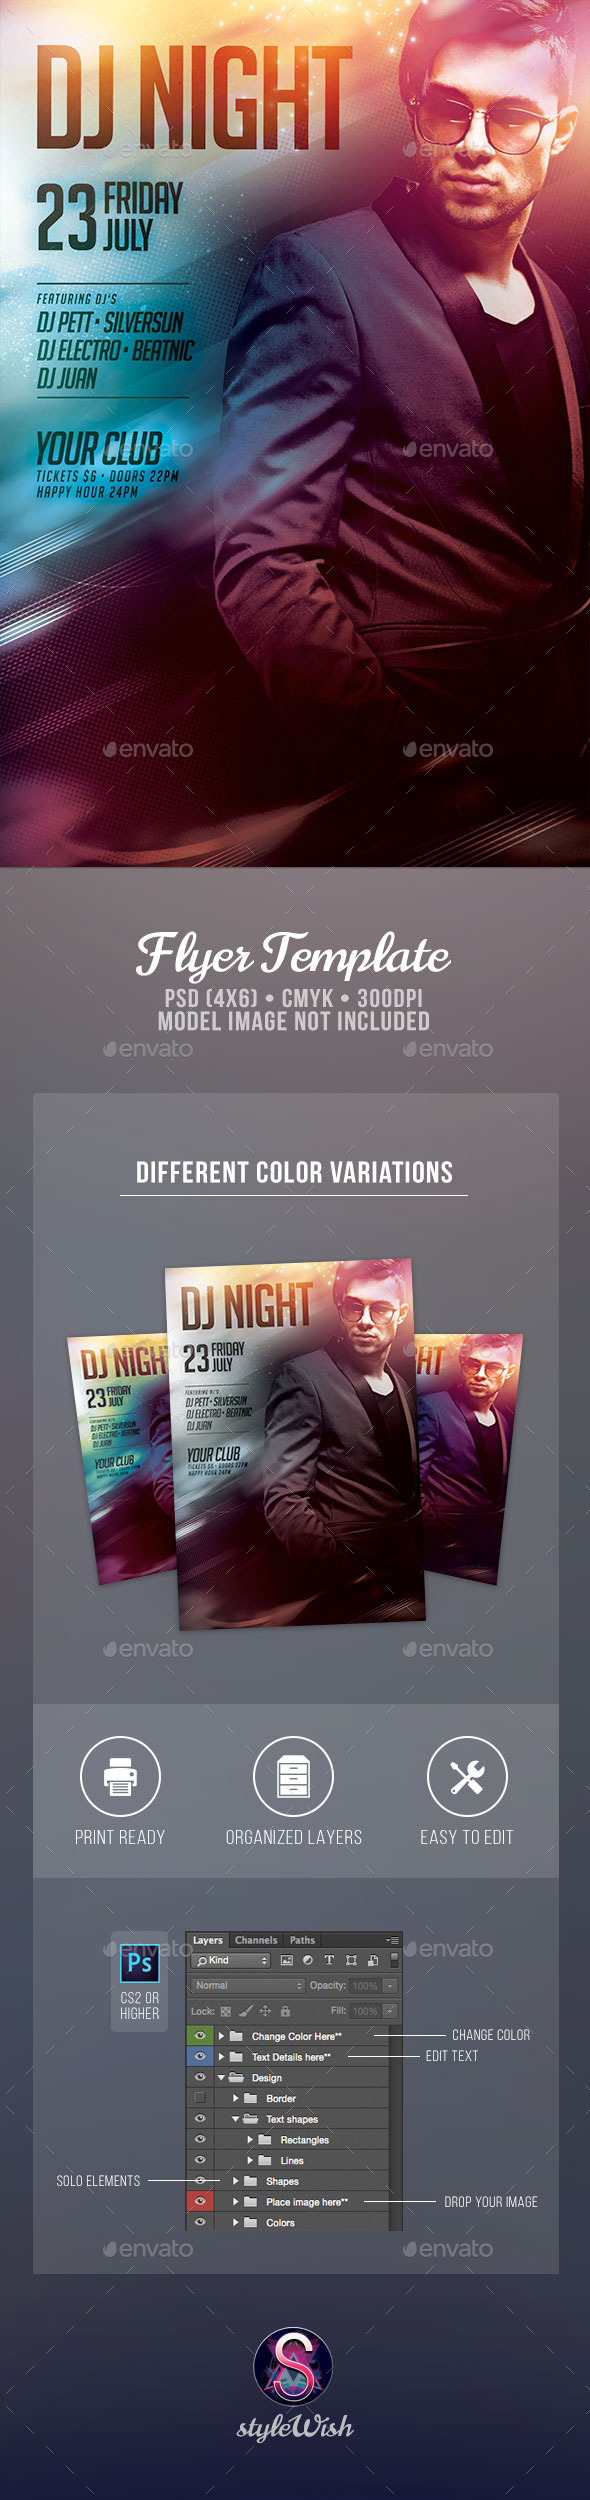 Dj Night Flyer - Clubs & Parties Events